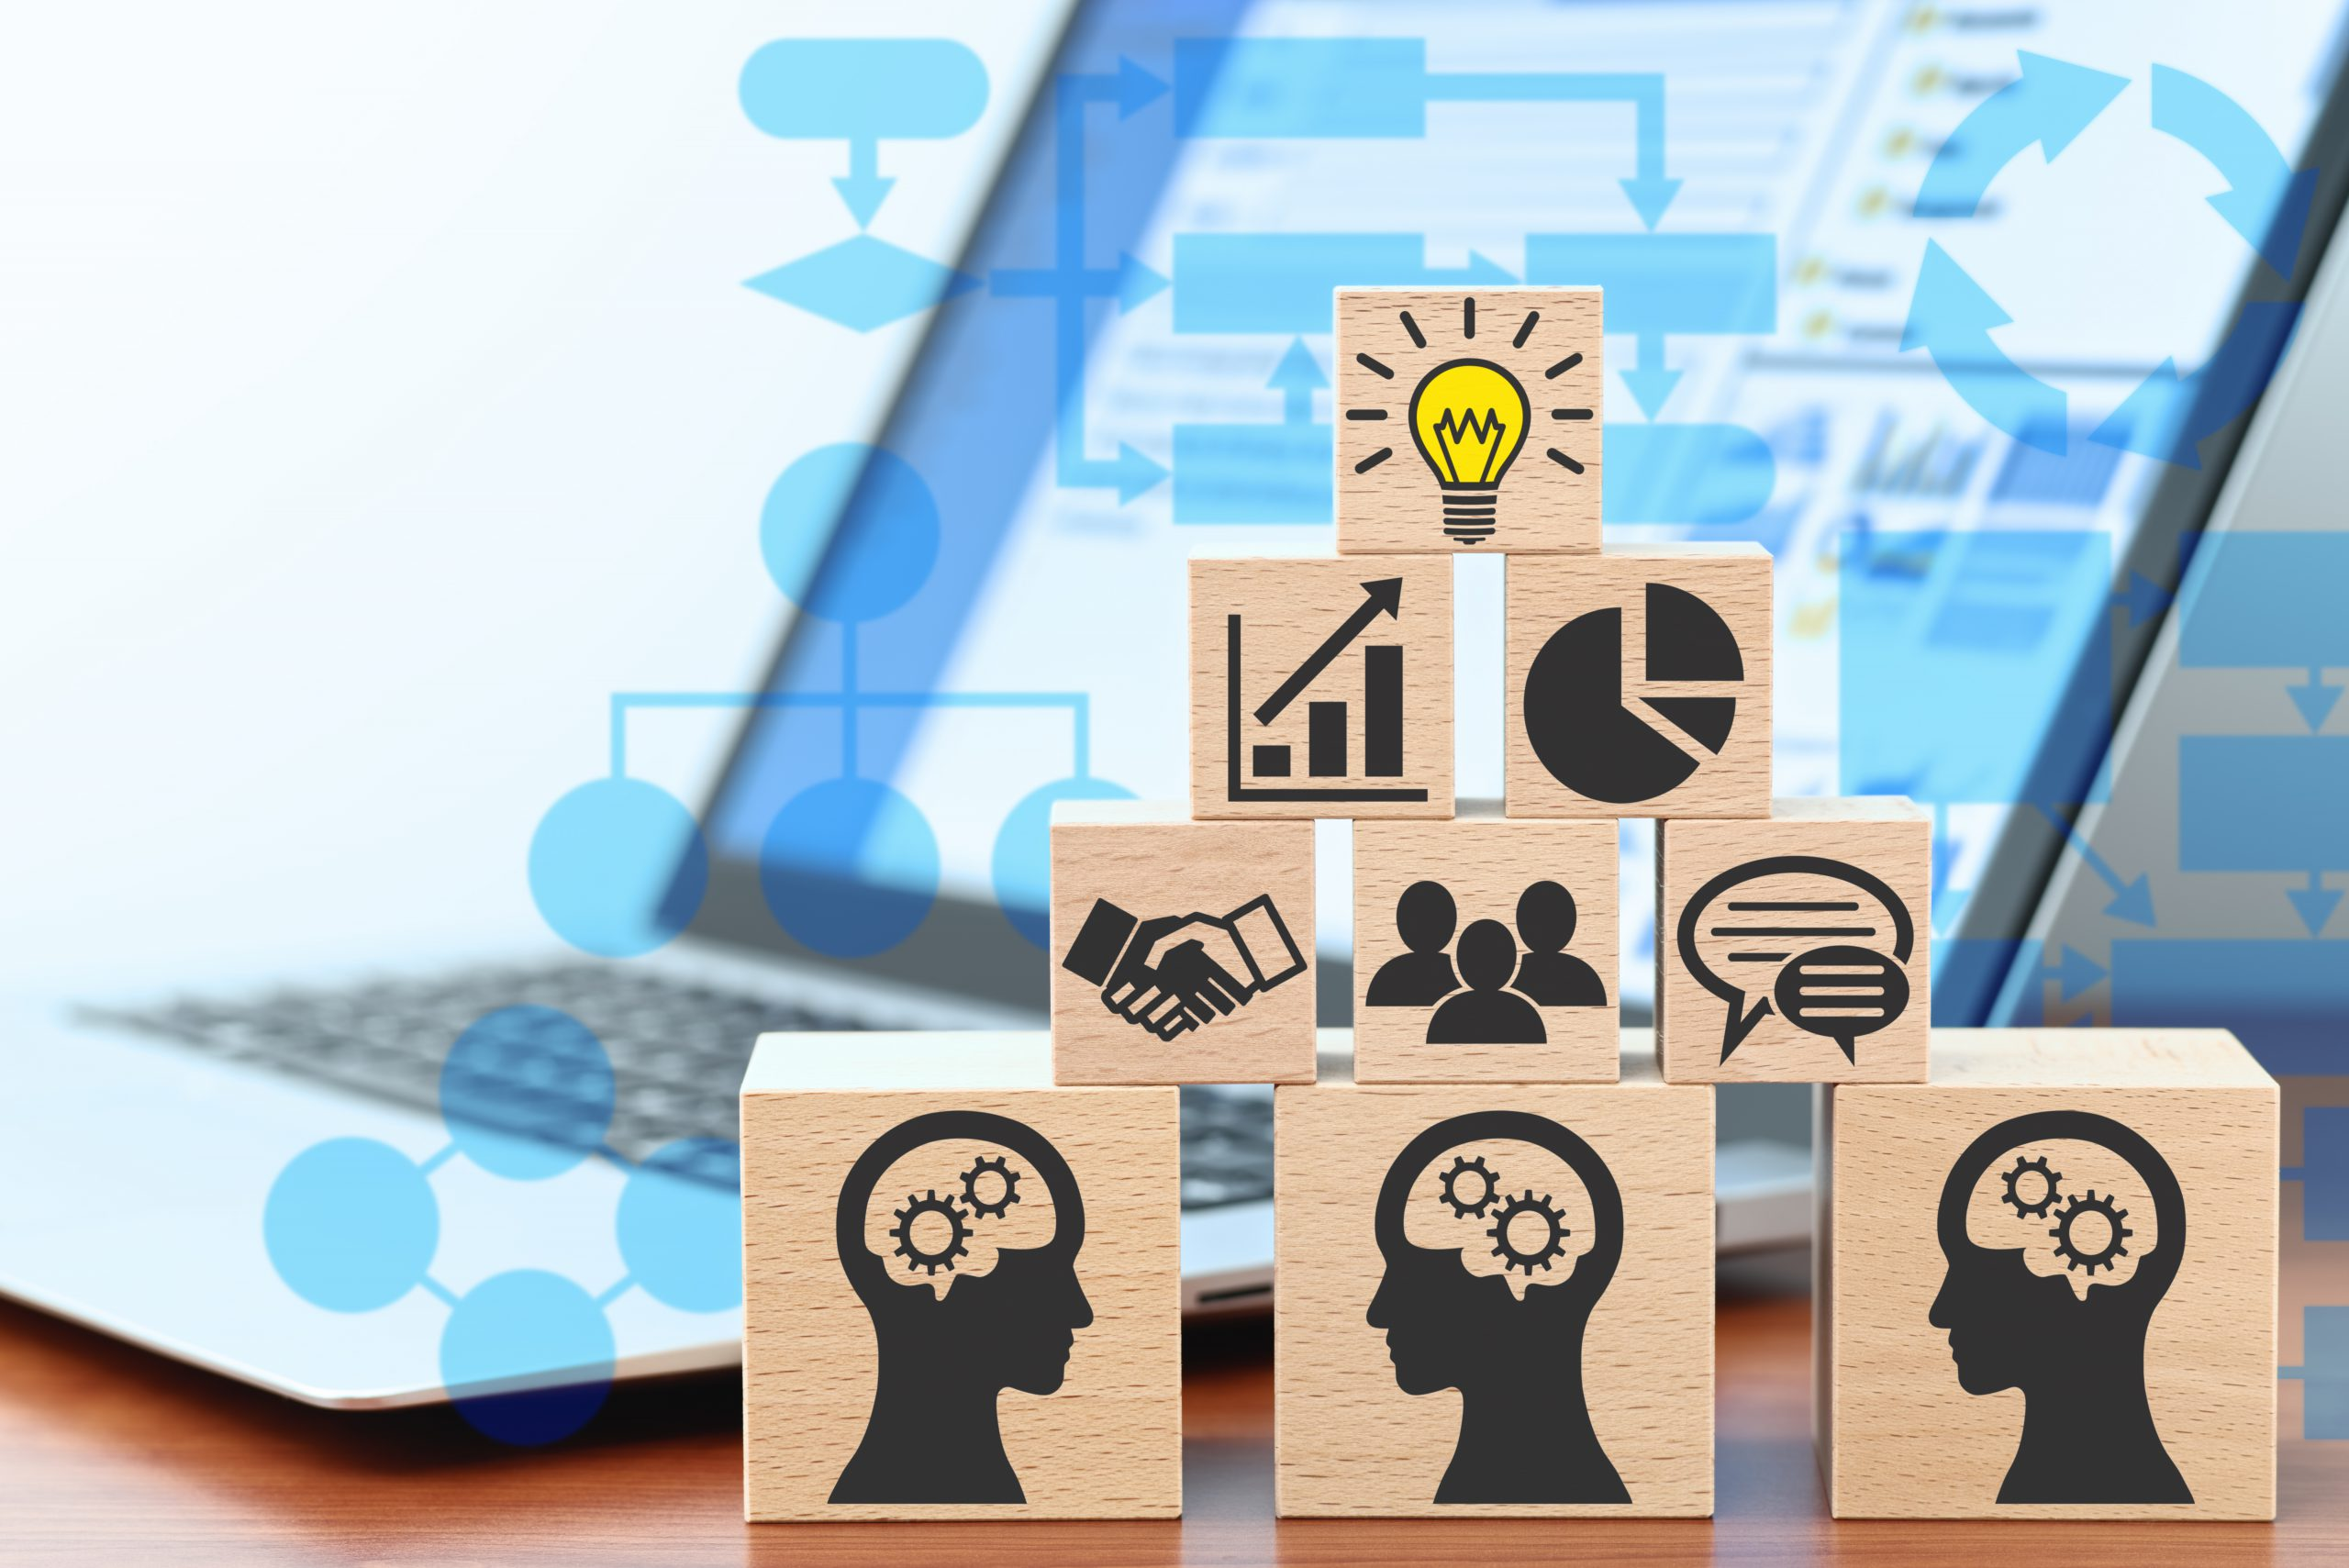 How to Build an Effective Knowledge Management System